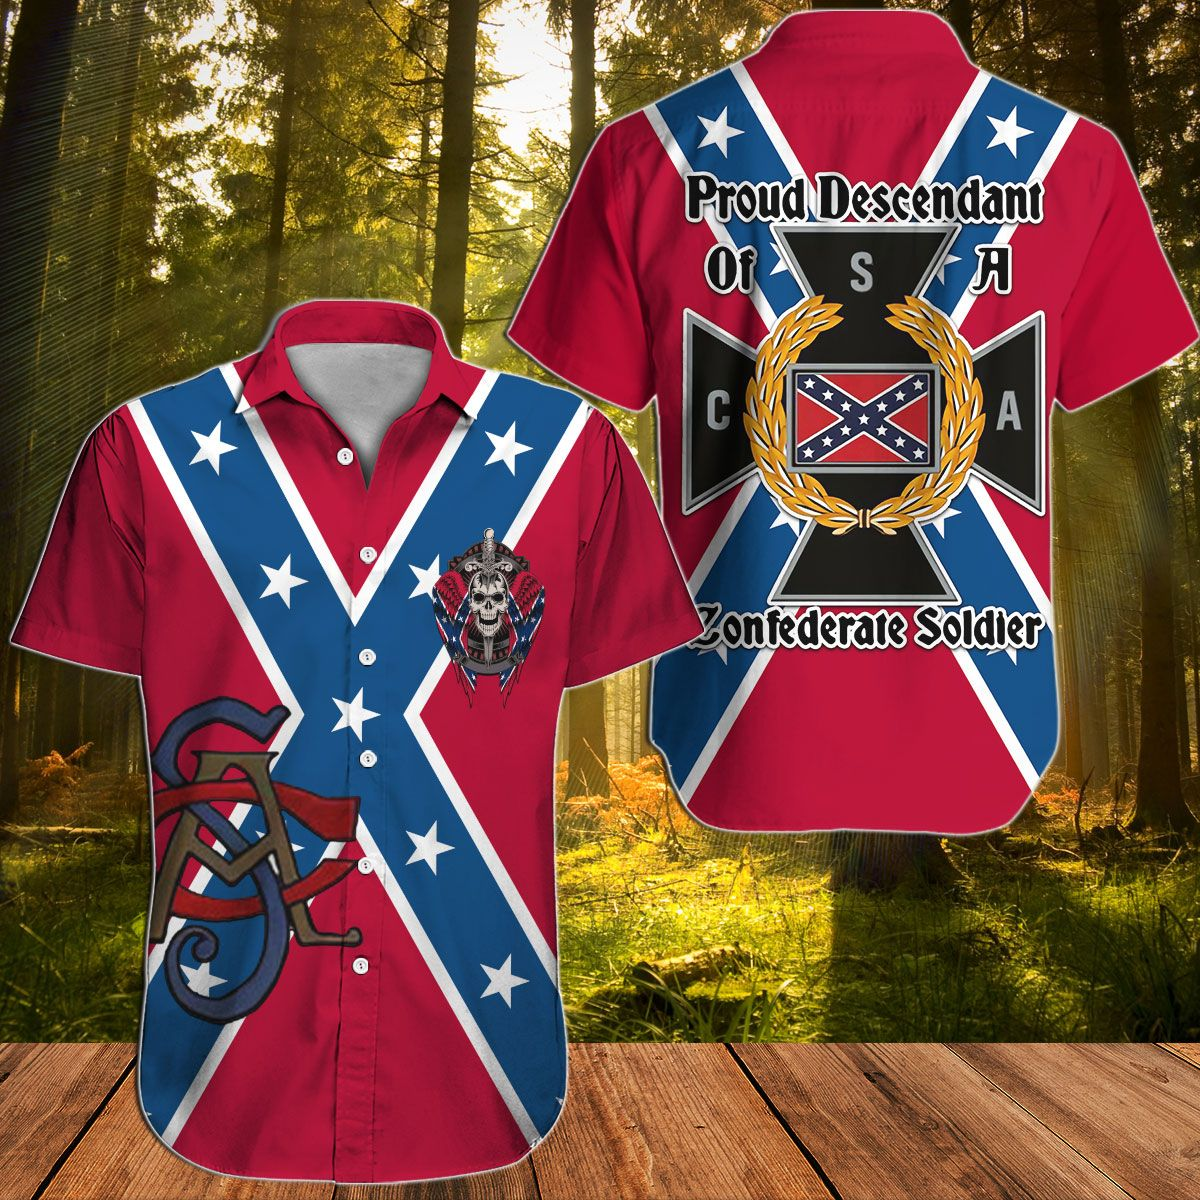 Southern Proud Descendant of a Confederate soldier Hawaiian shirt